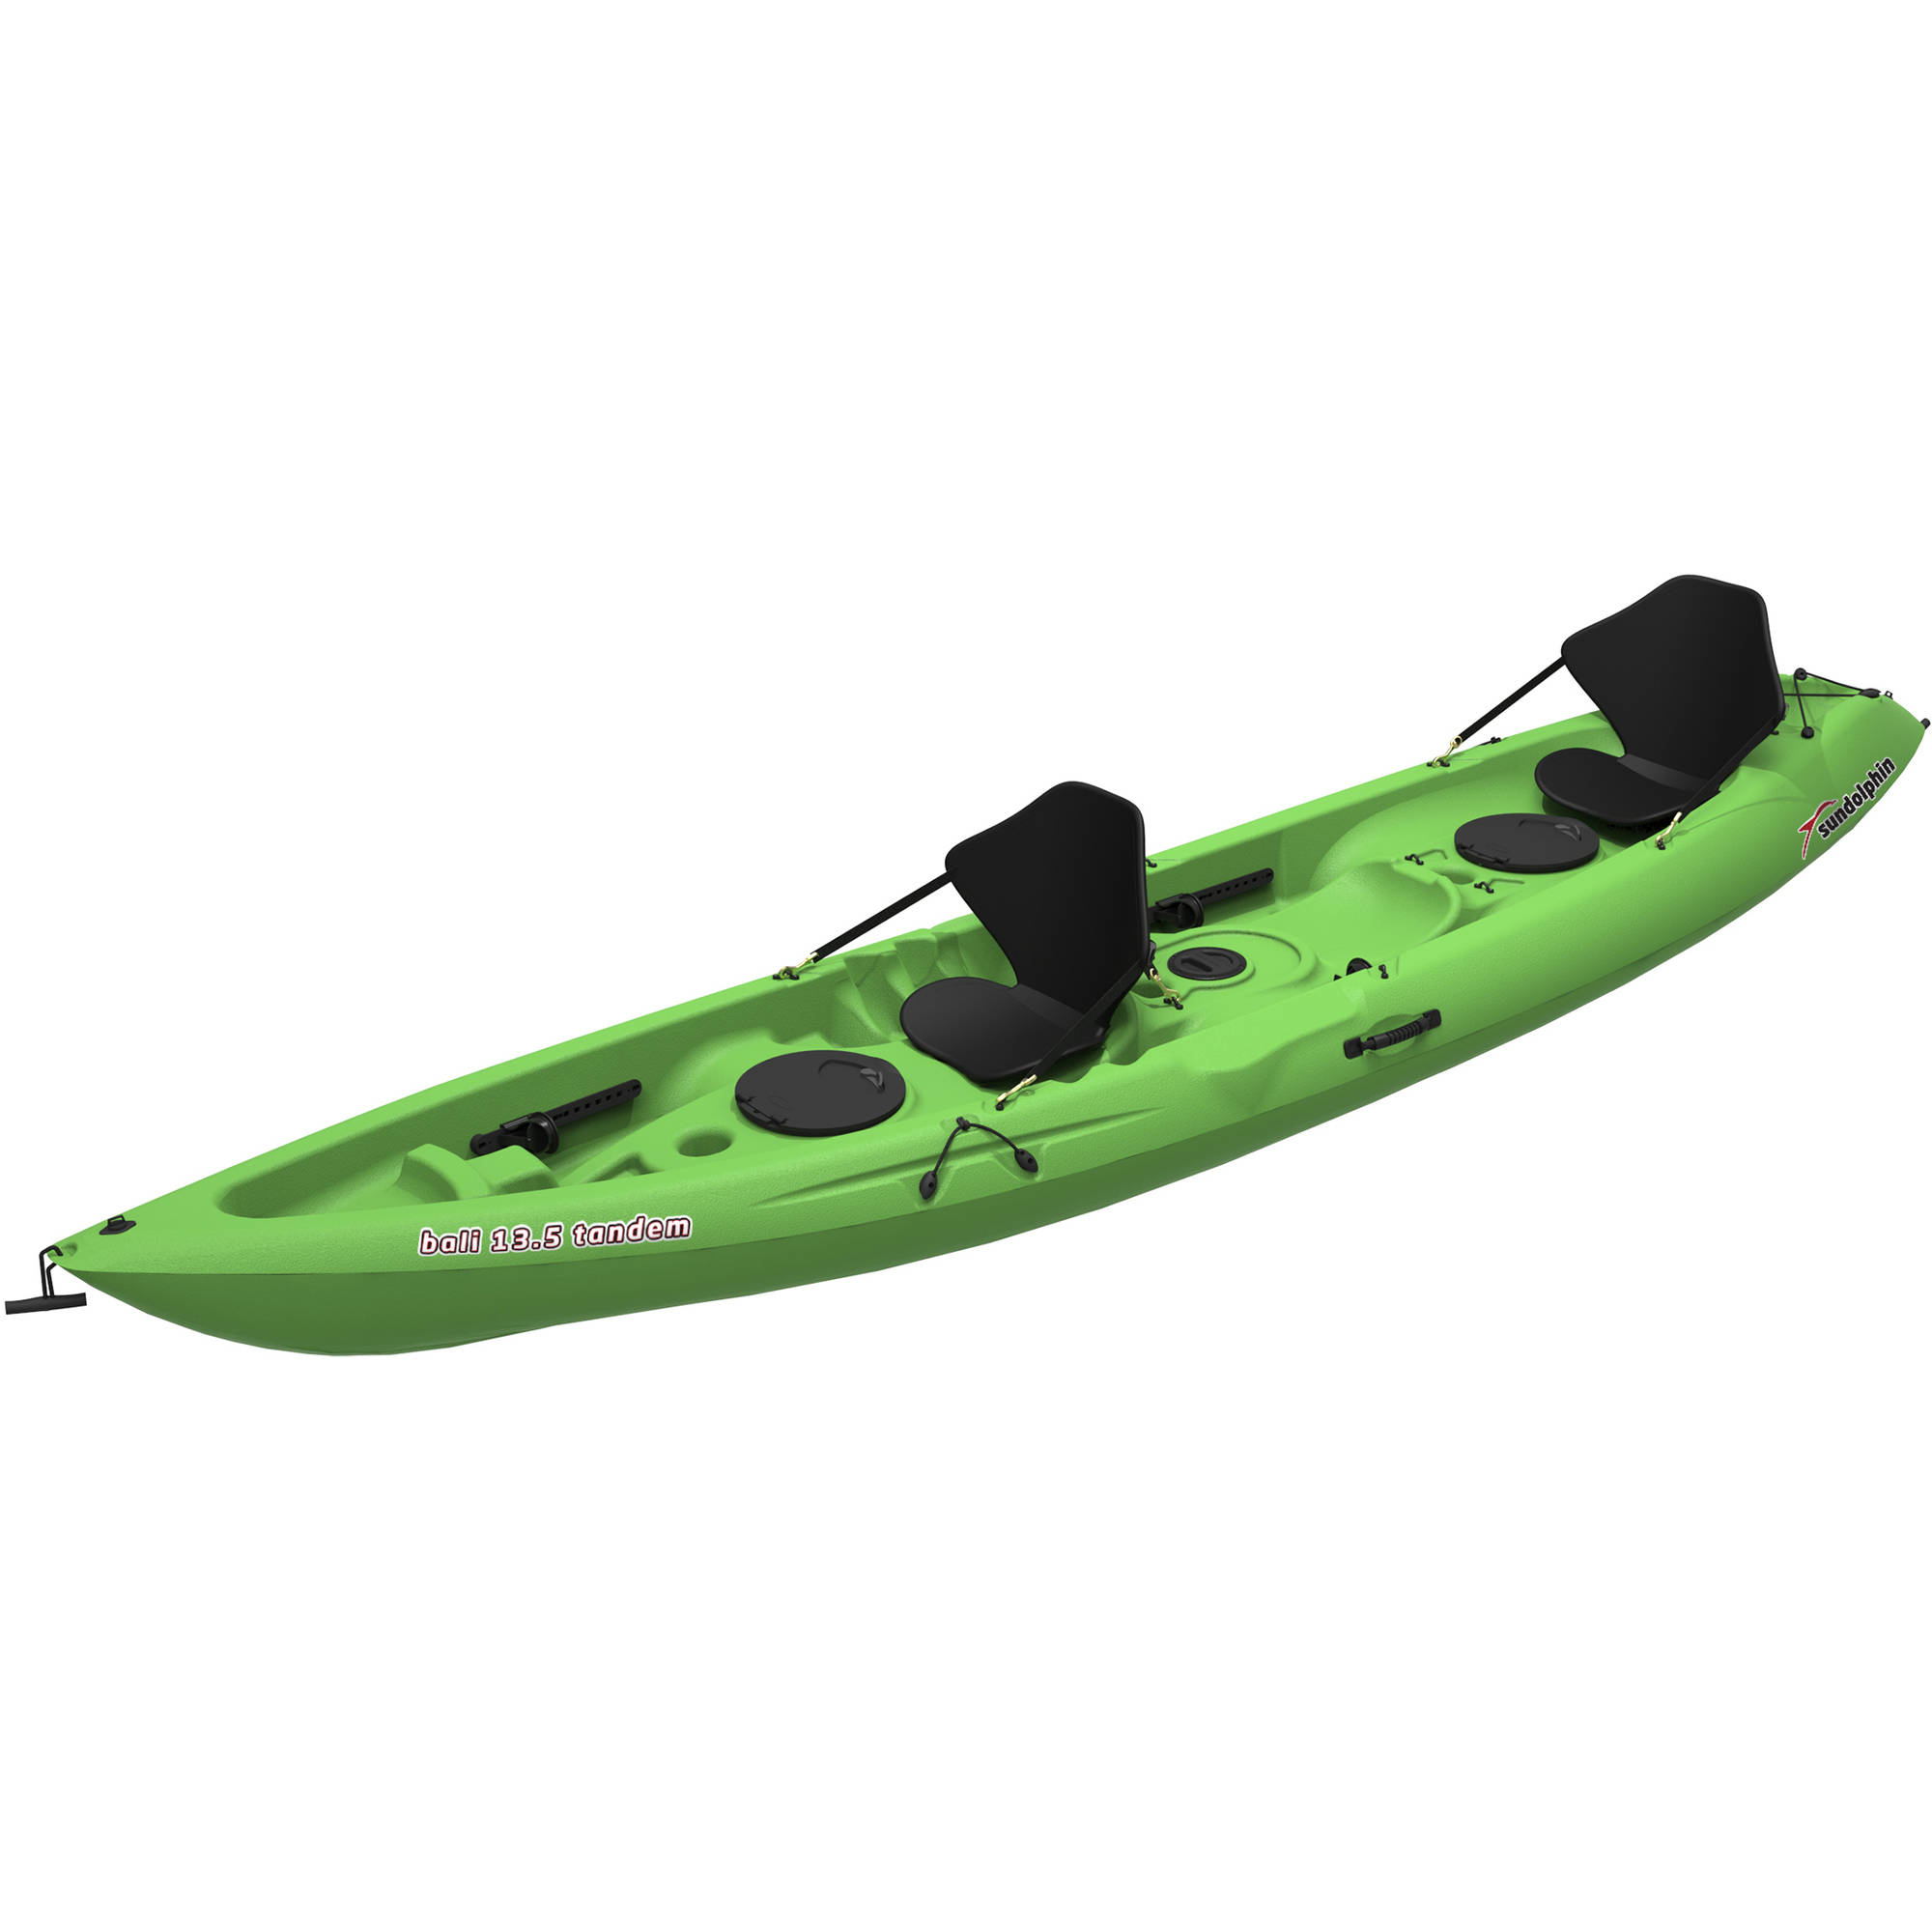 Sun Dolphin Bali 13.5 Tandem, Paddle Included by KL Outdoor